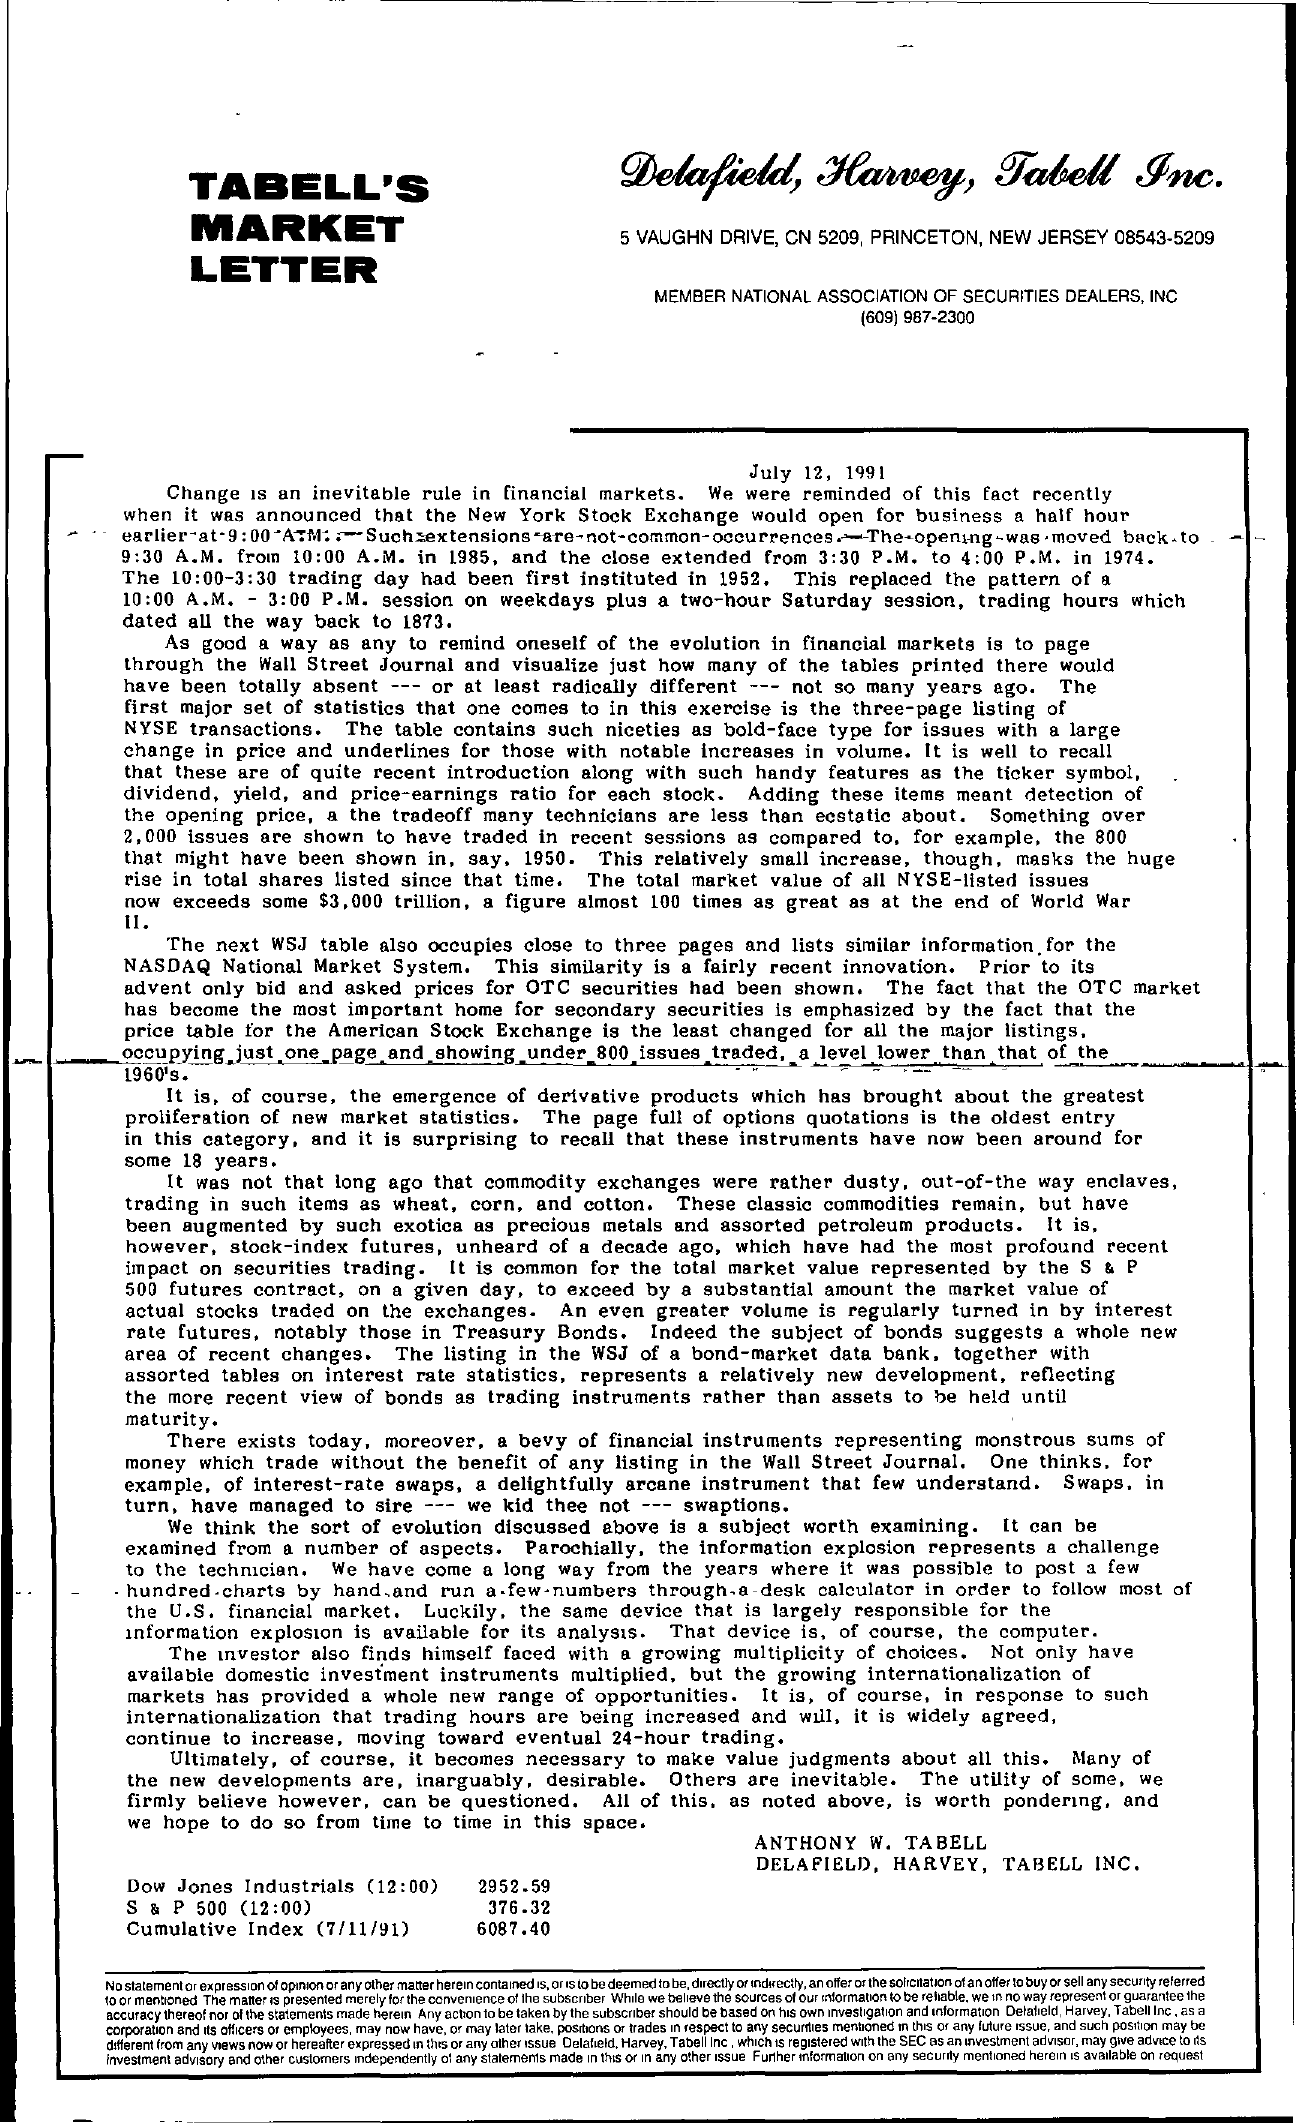 Tabell's Market Letter - July 12, 1991